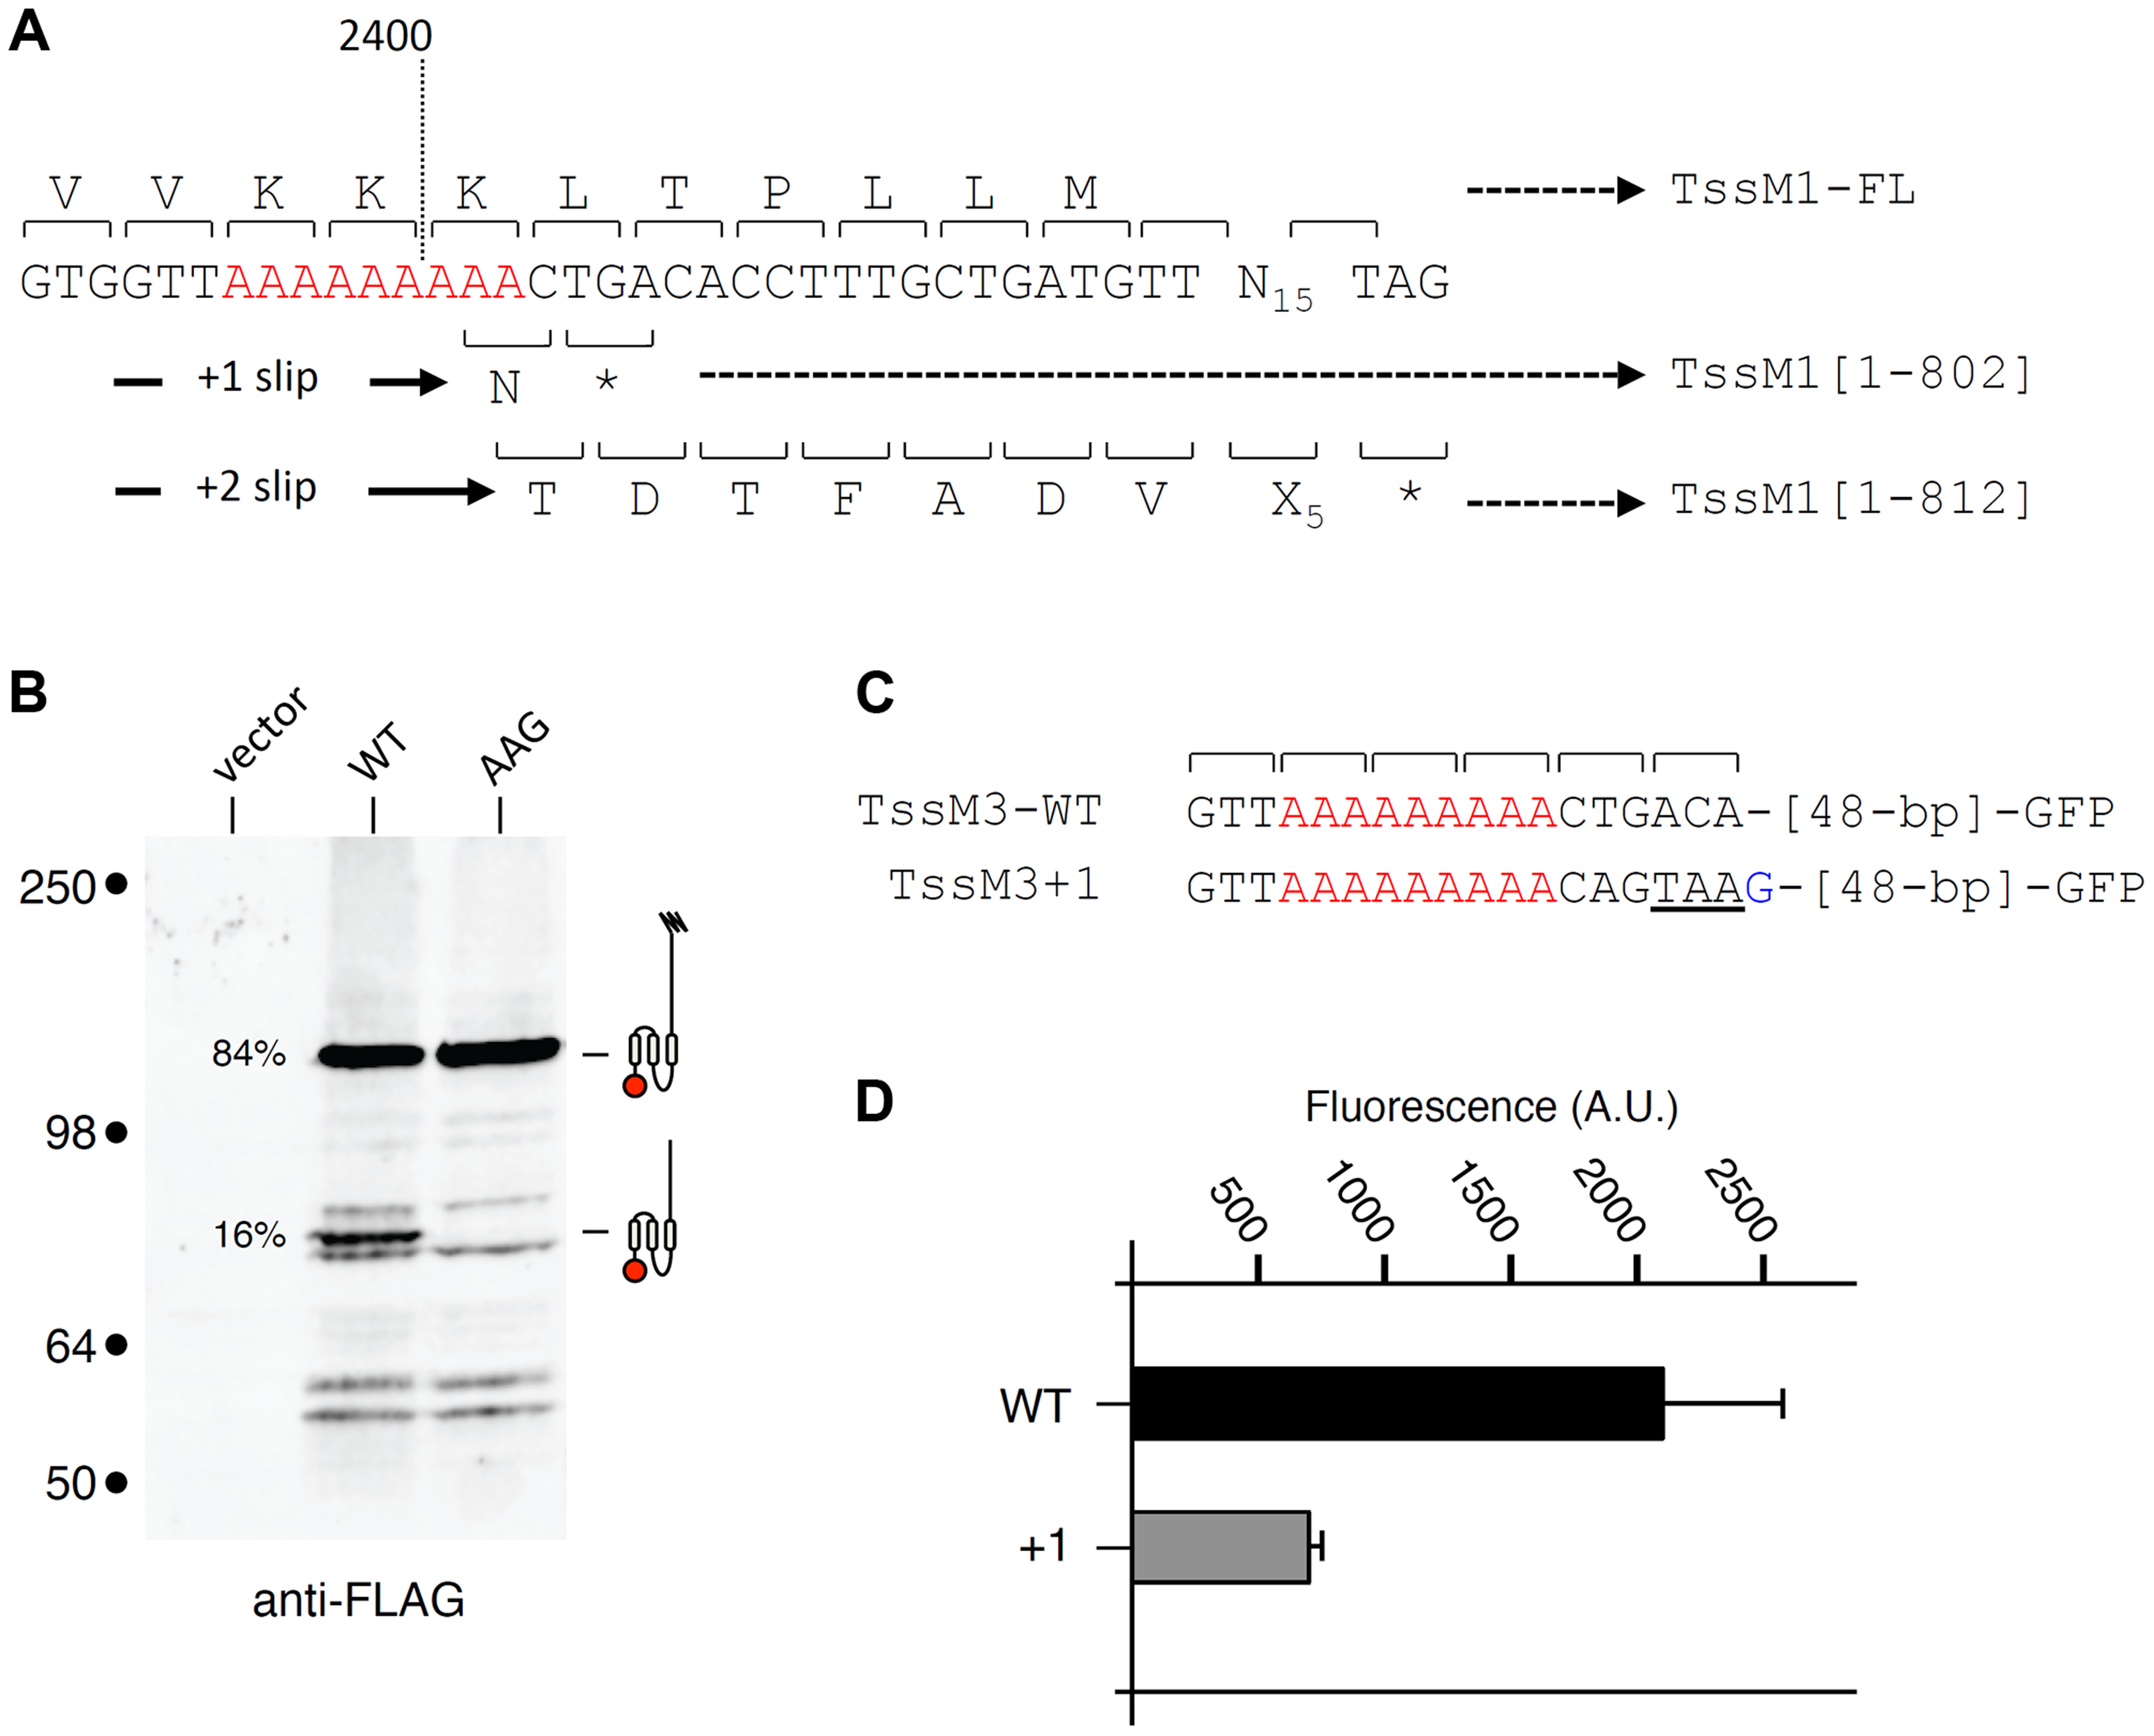 Transcriptional slippage is conserved in <i>Y. pseudotuberculosis</i>.